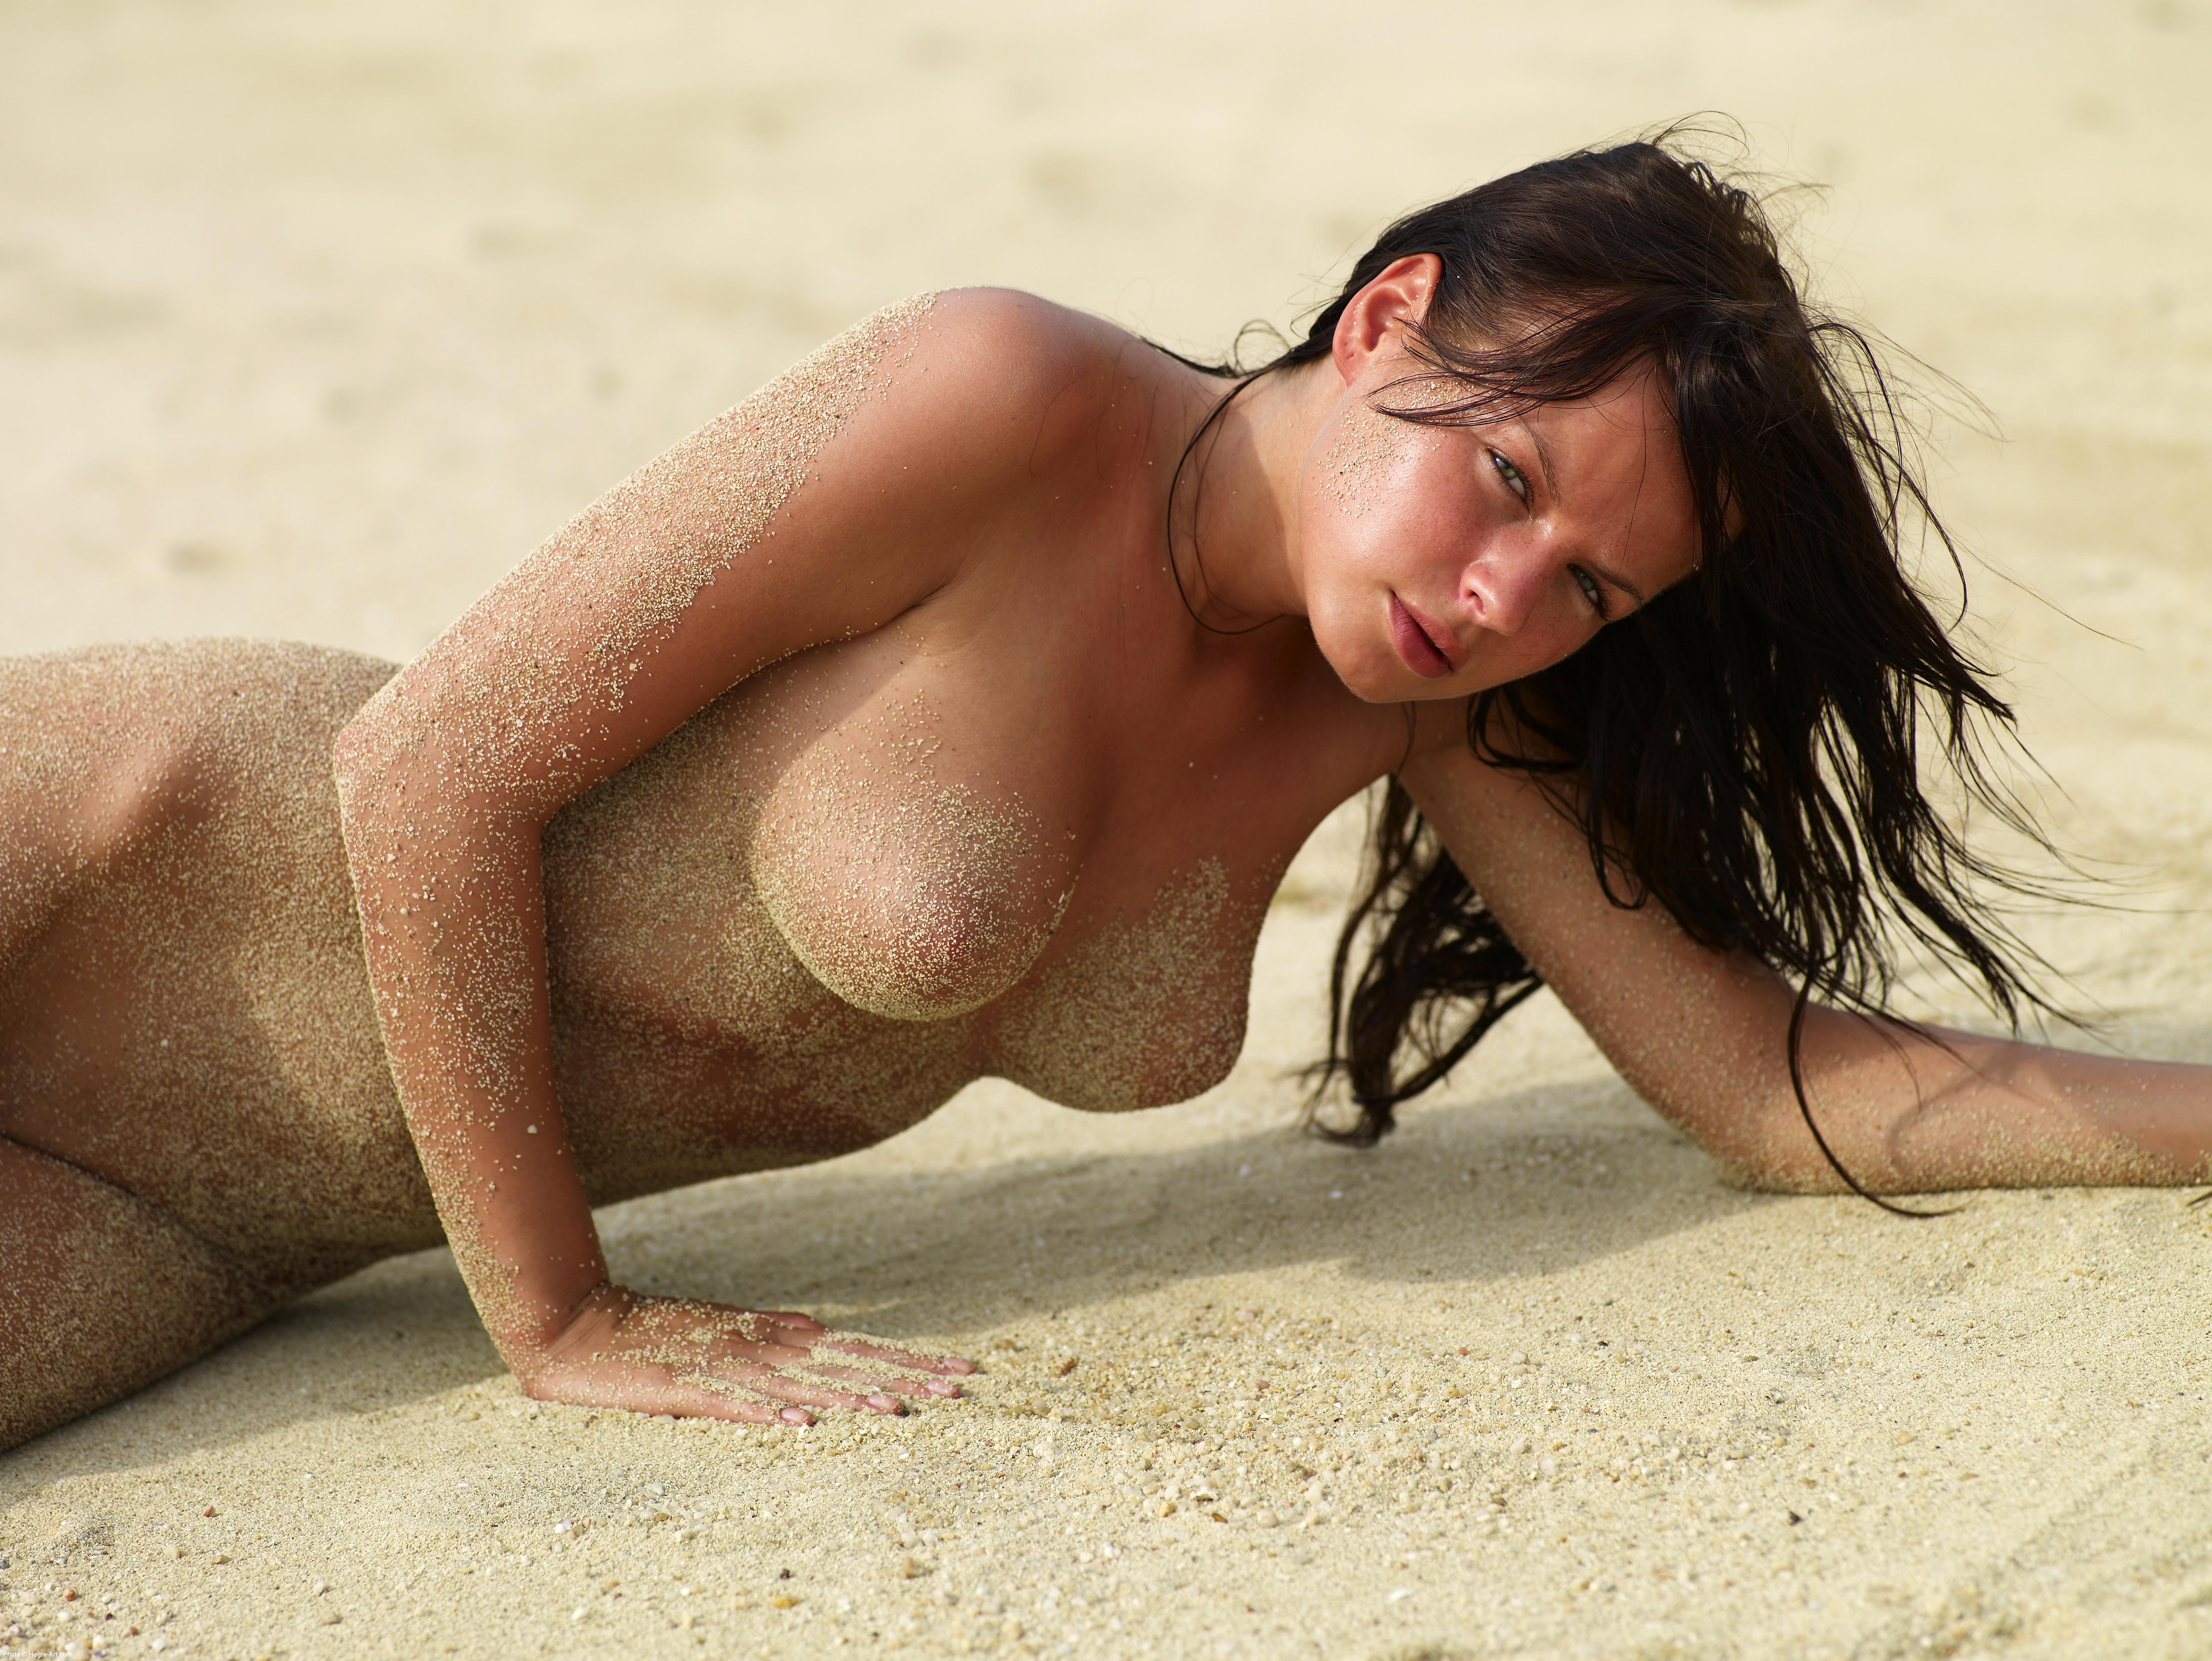 Lysa Nude Thai Beach 2008 06 14 043 xxxl